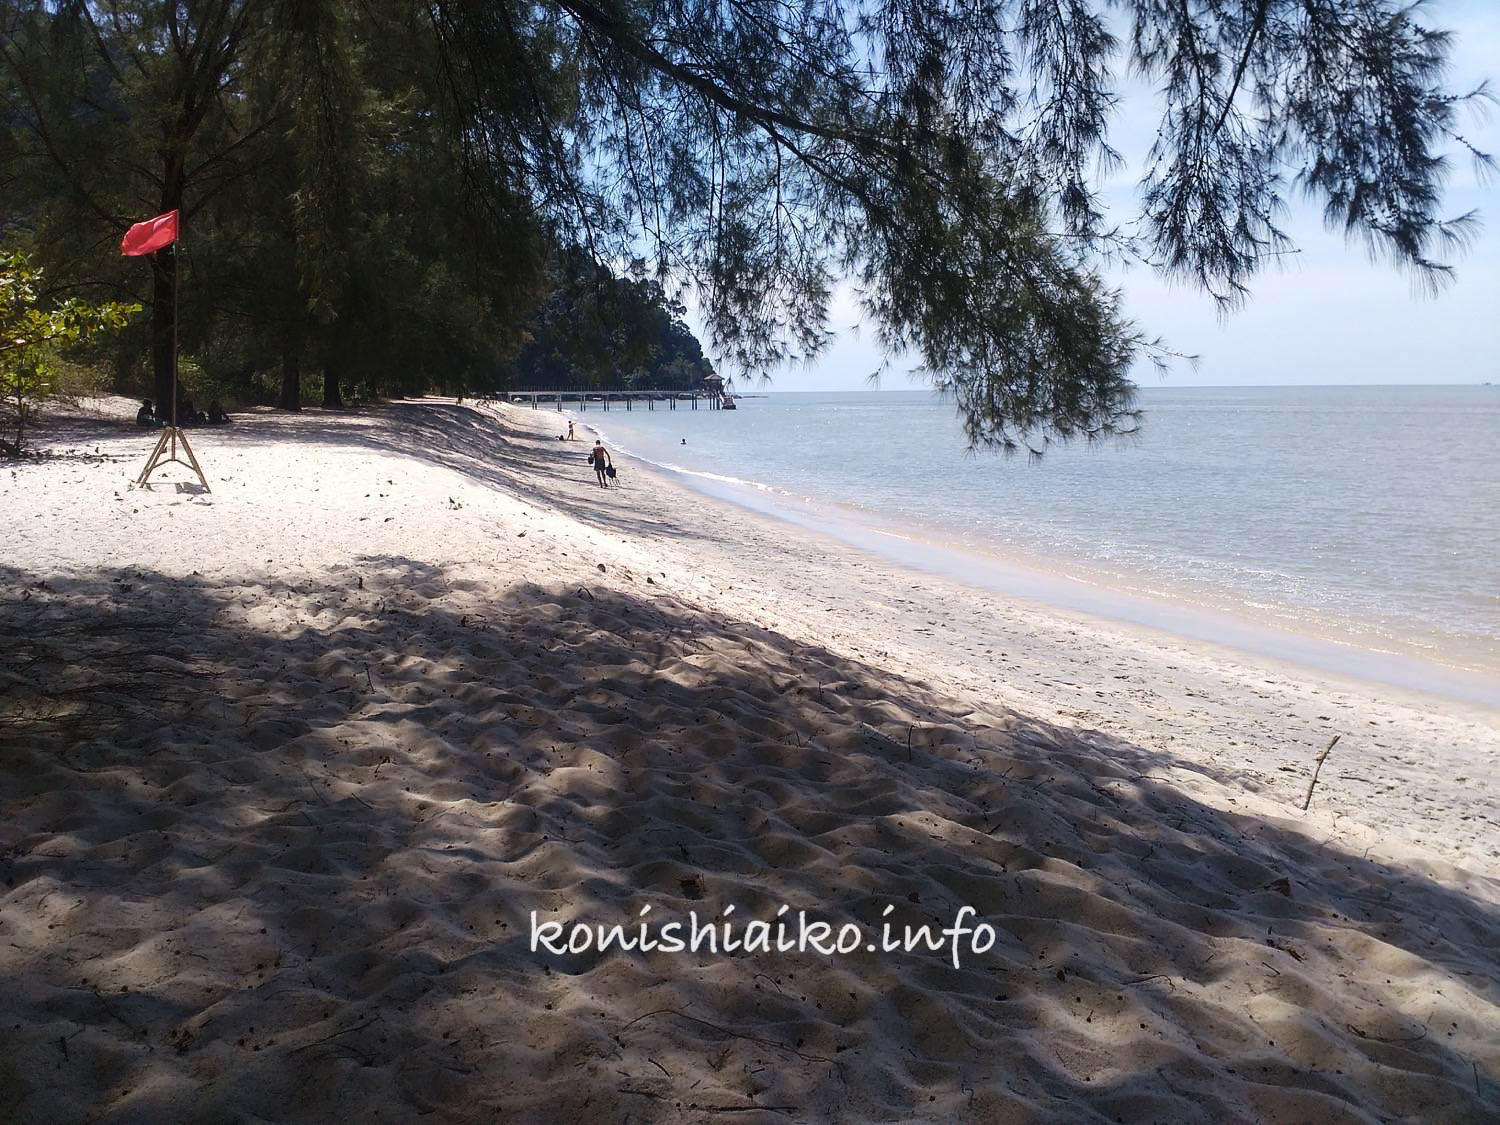 Penang National Parik - Kerachut Beach